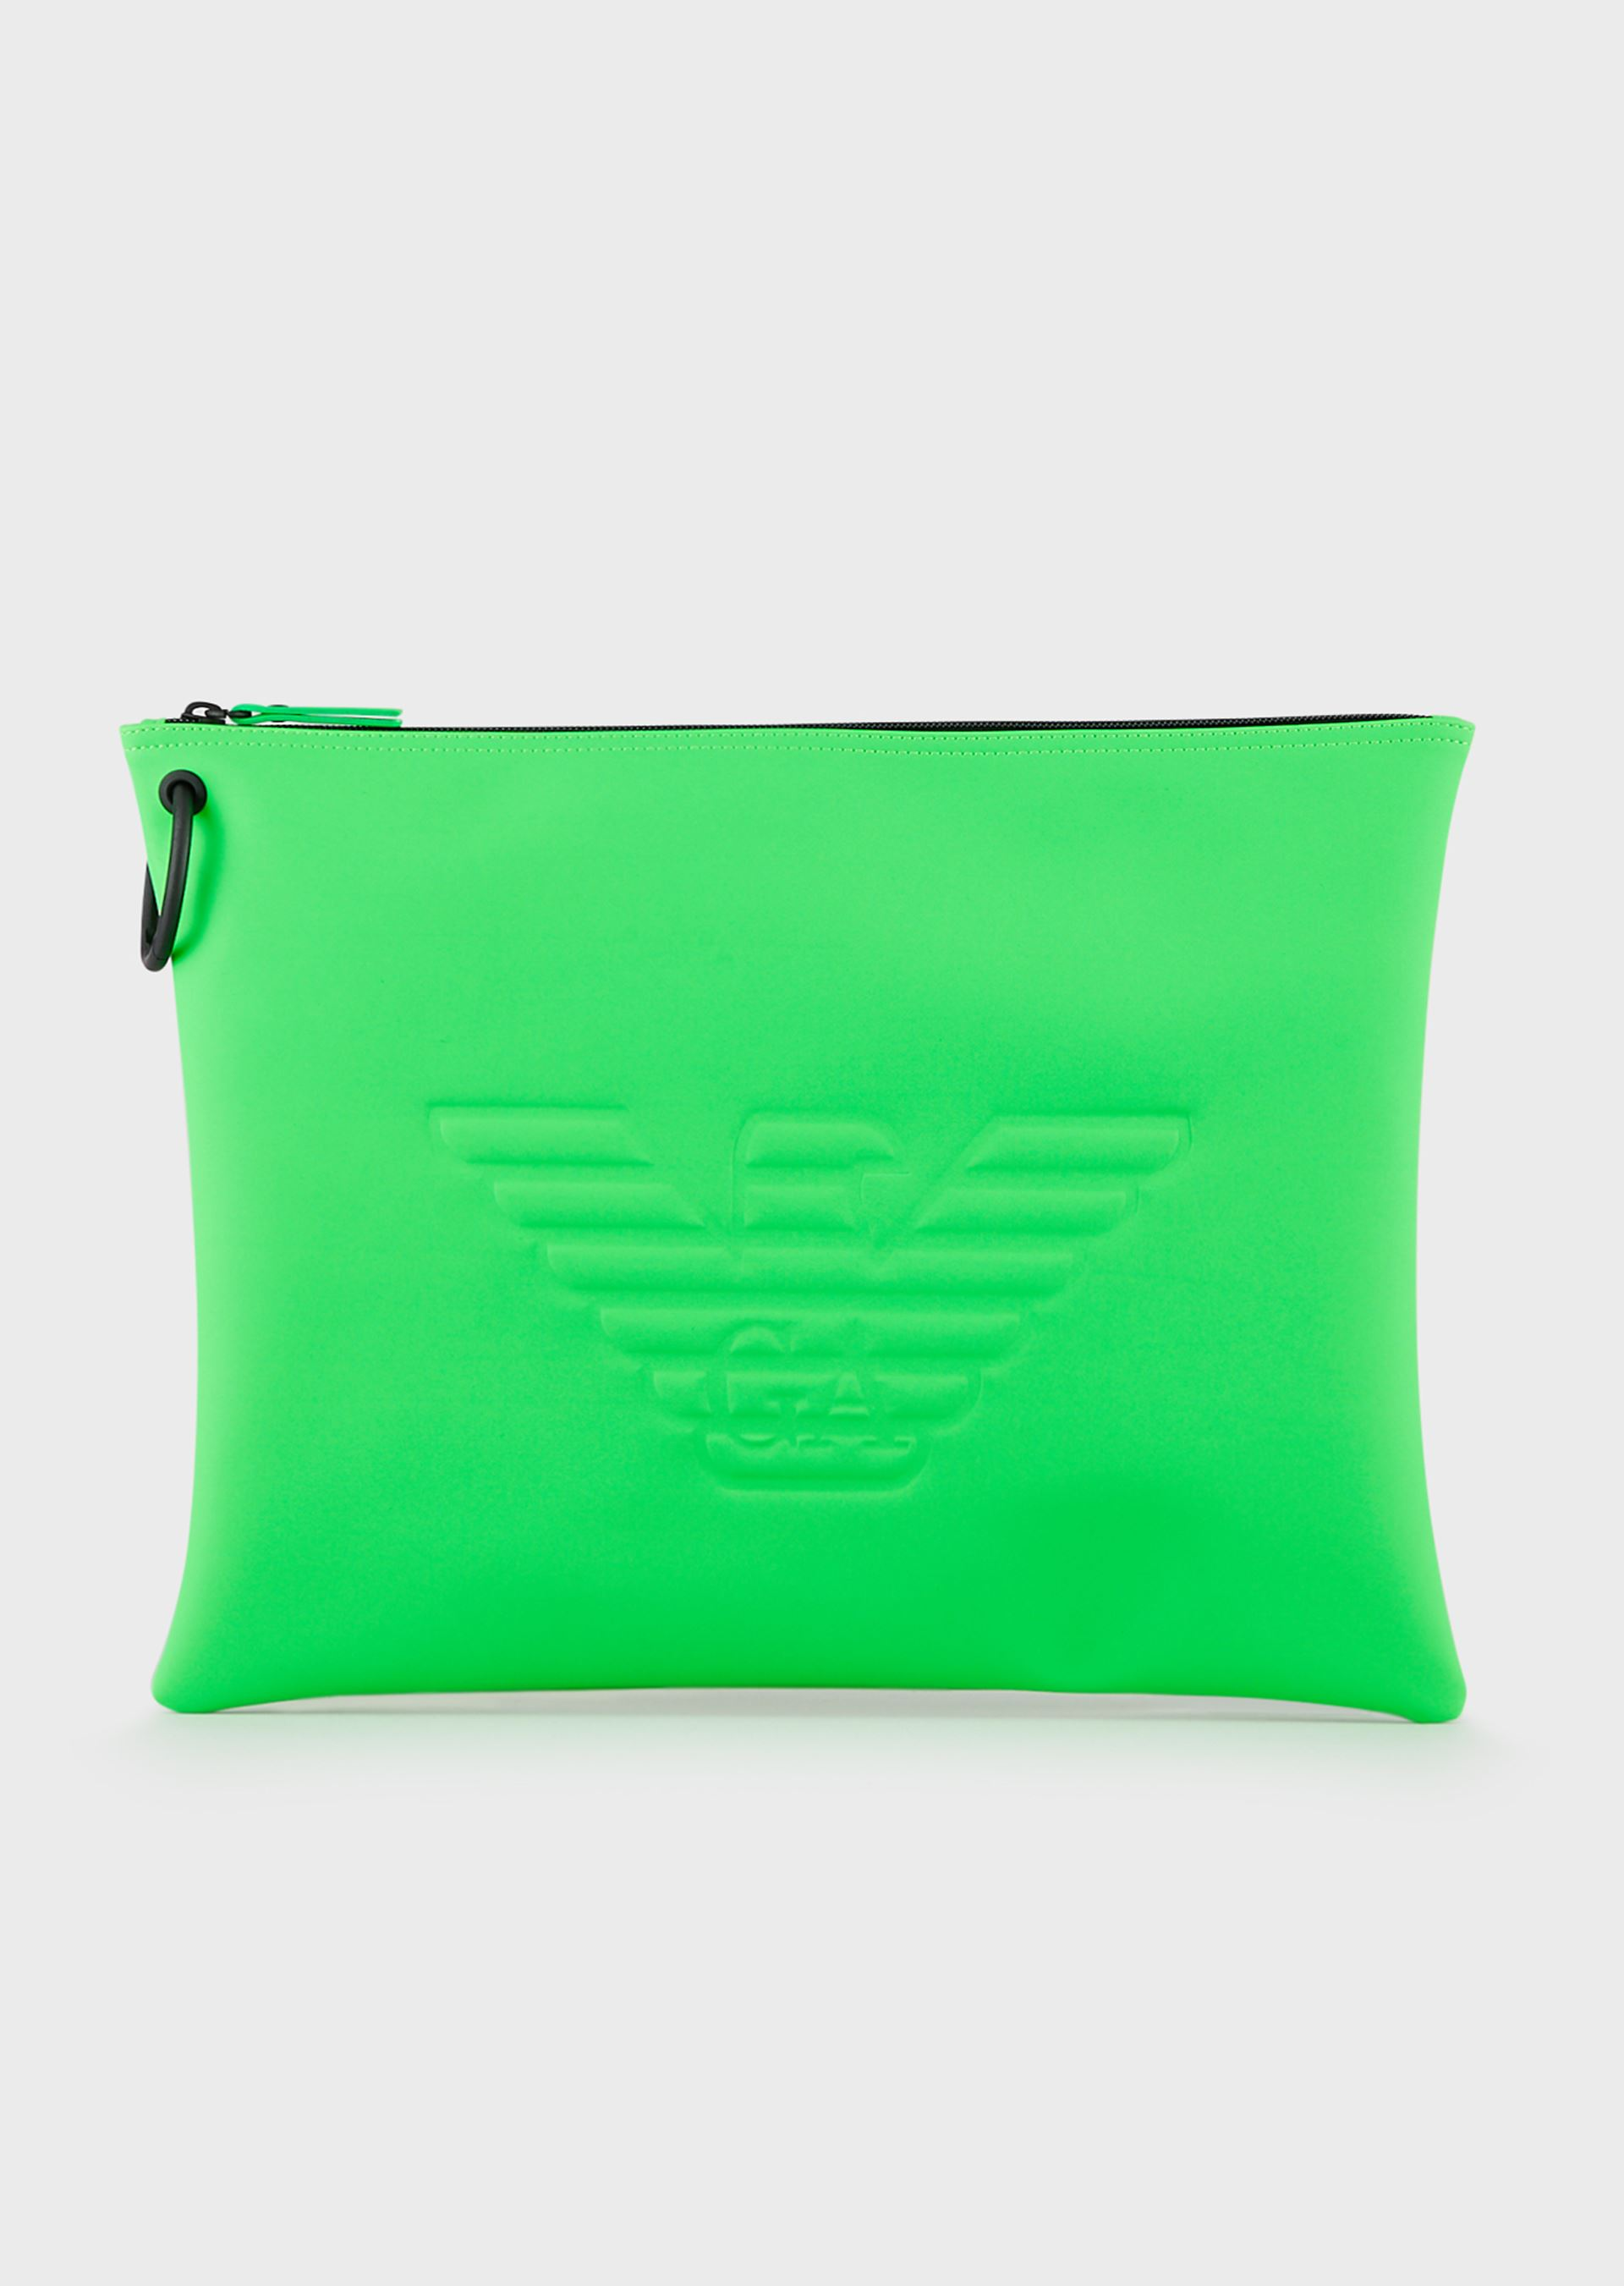 Emporio Armani Travel Accessories - Item 46678722 In Green